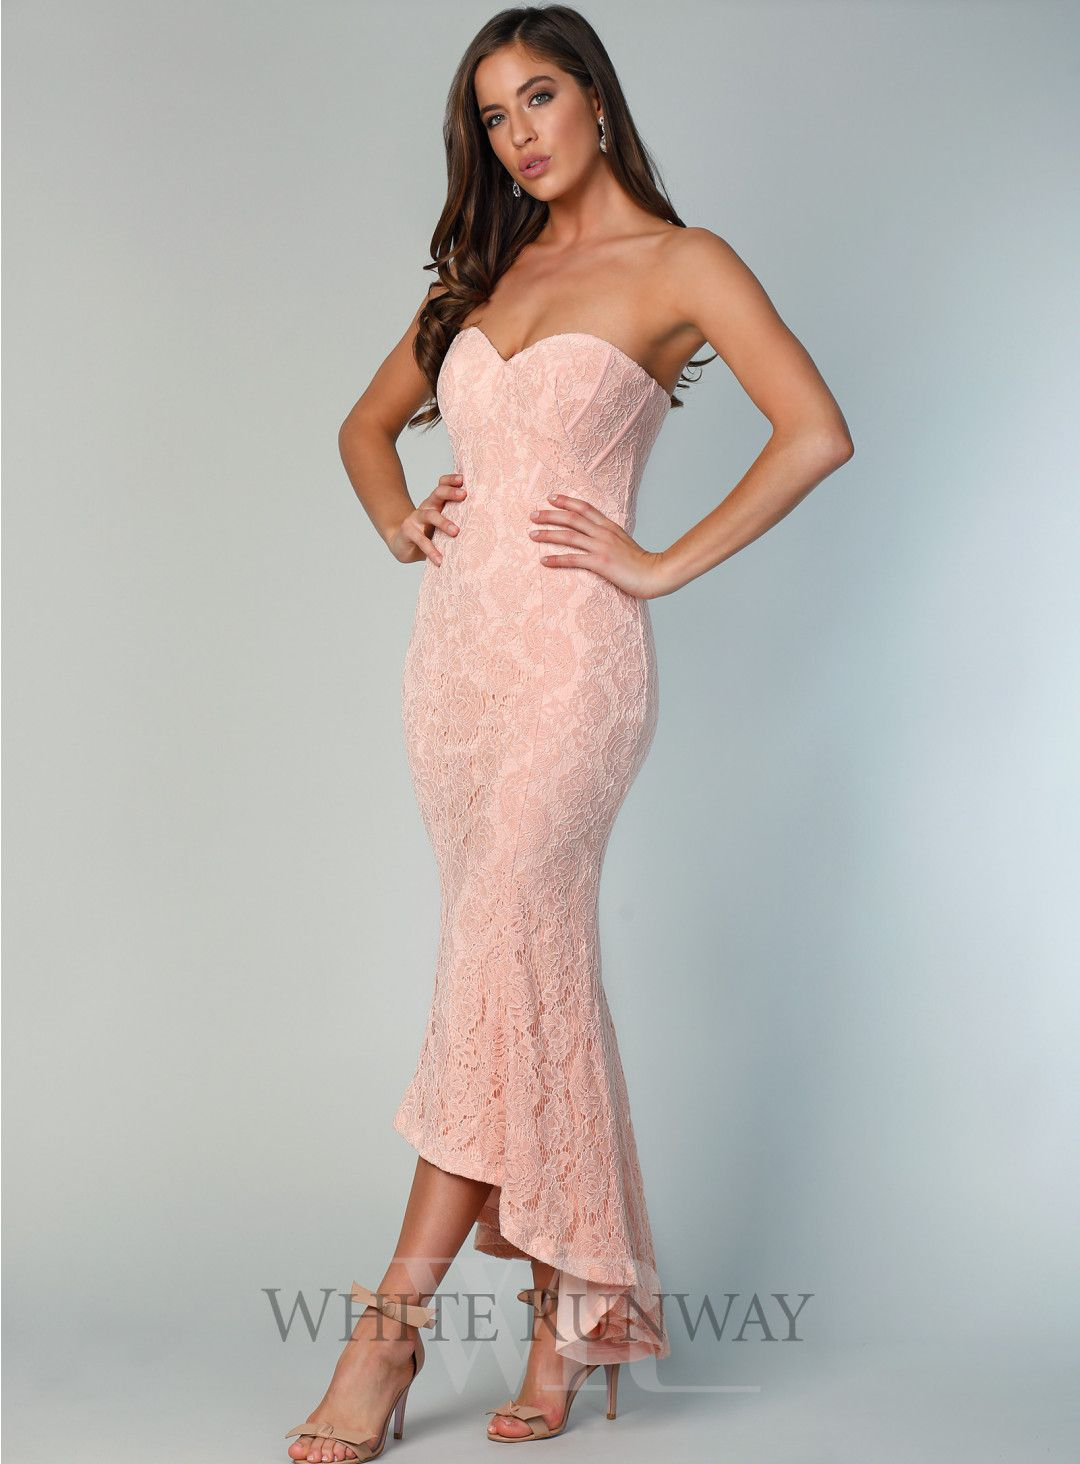 098352898df1 Kate Strapless Chantilly Midi. A beautiful hi-lo dress by Bariano. A  strapless style featuring a sweetheart neckline and soft frill skirt.